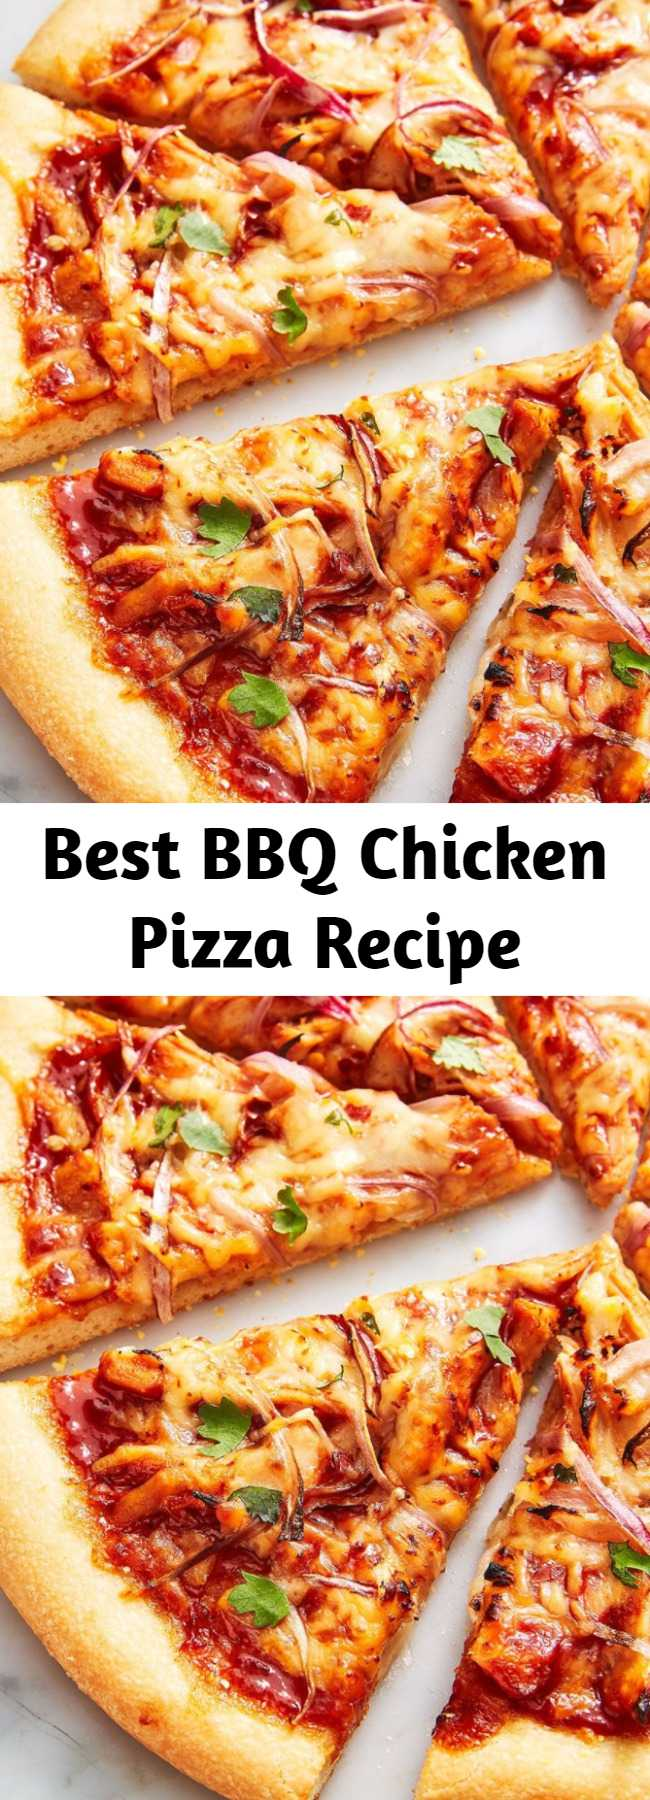 Best BBQ Chicken Pizza Recipe -  Our recipe uses tangy gouda, creamy mozzarella, and a hefty dose of red onions and cilantro for freshness. We happen to think it gives good ol' CPK a run for their money.